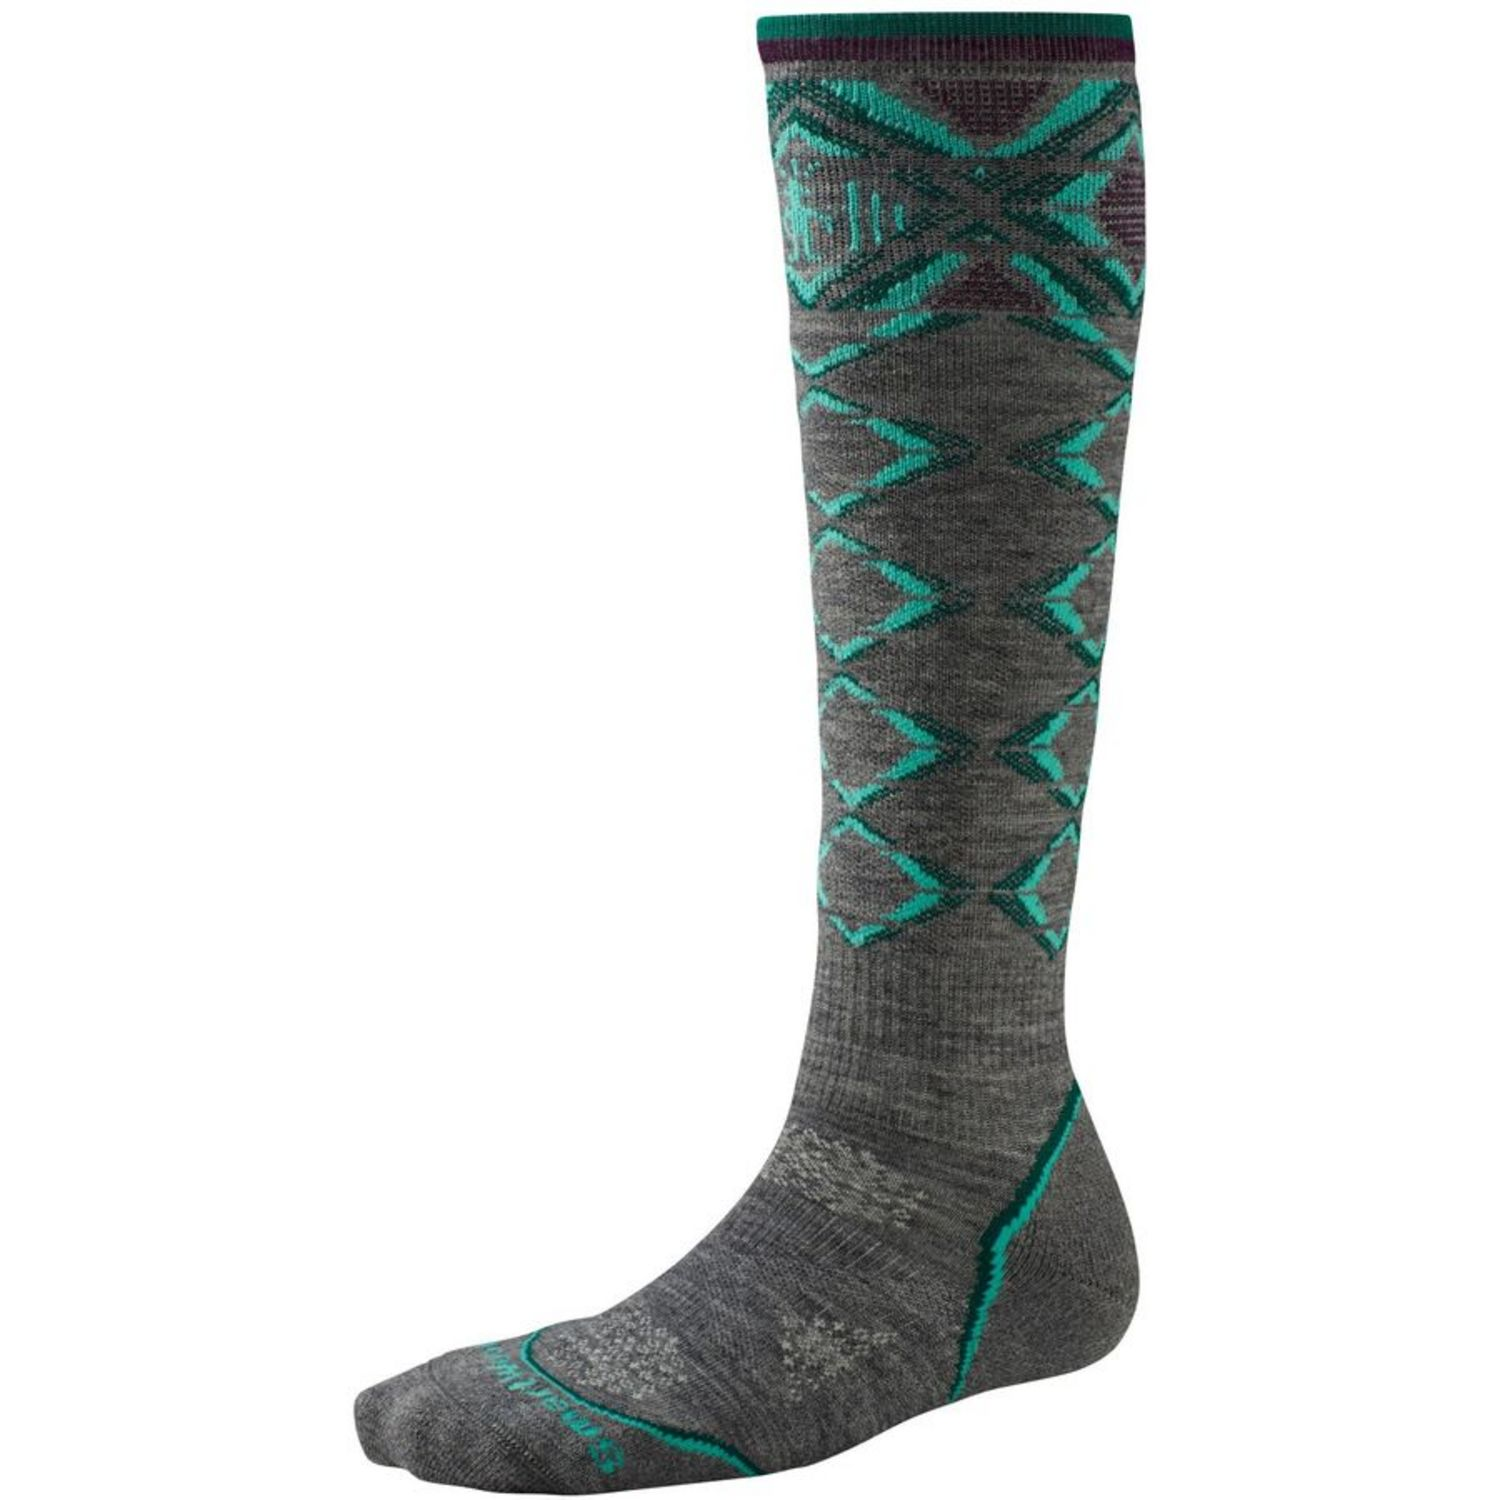 Smartwool Womens Phd Ski Light Pattern Socks